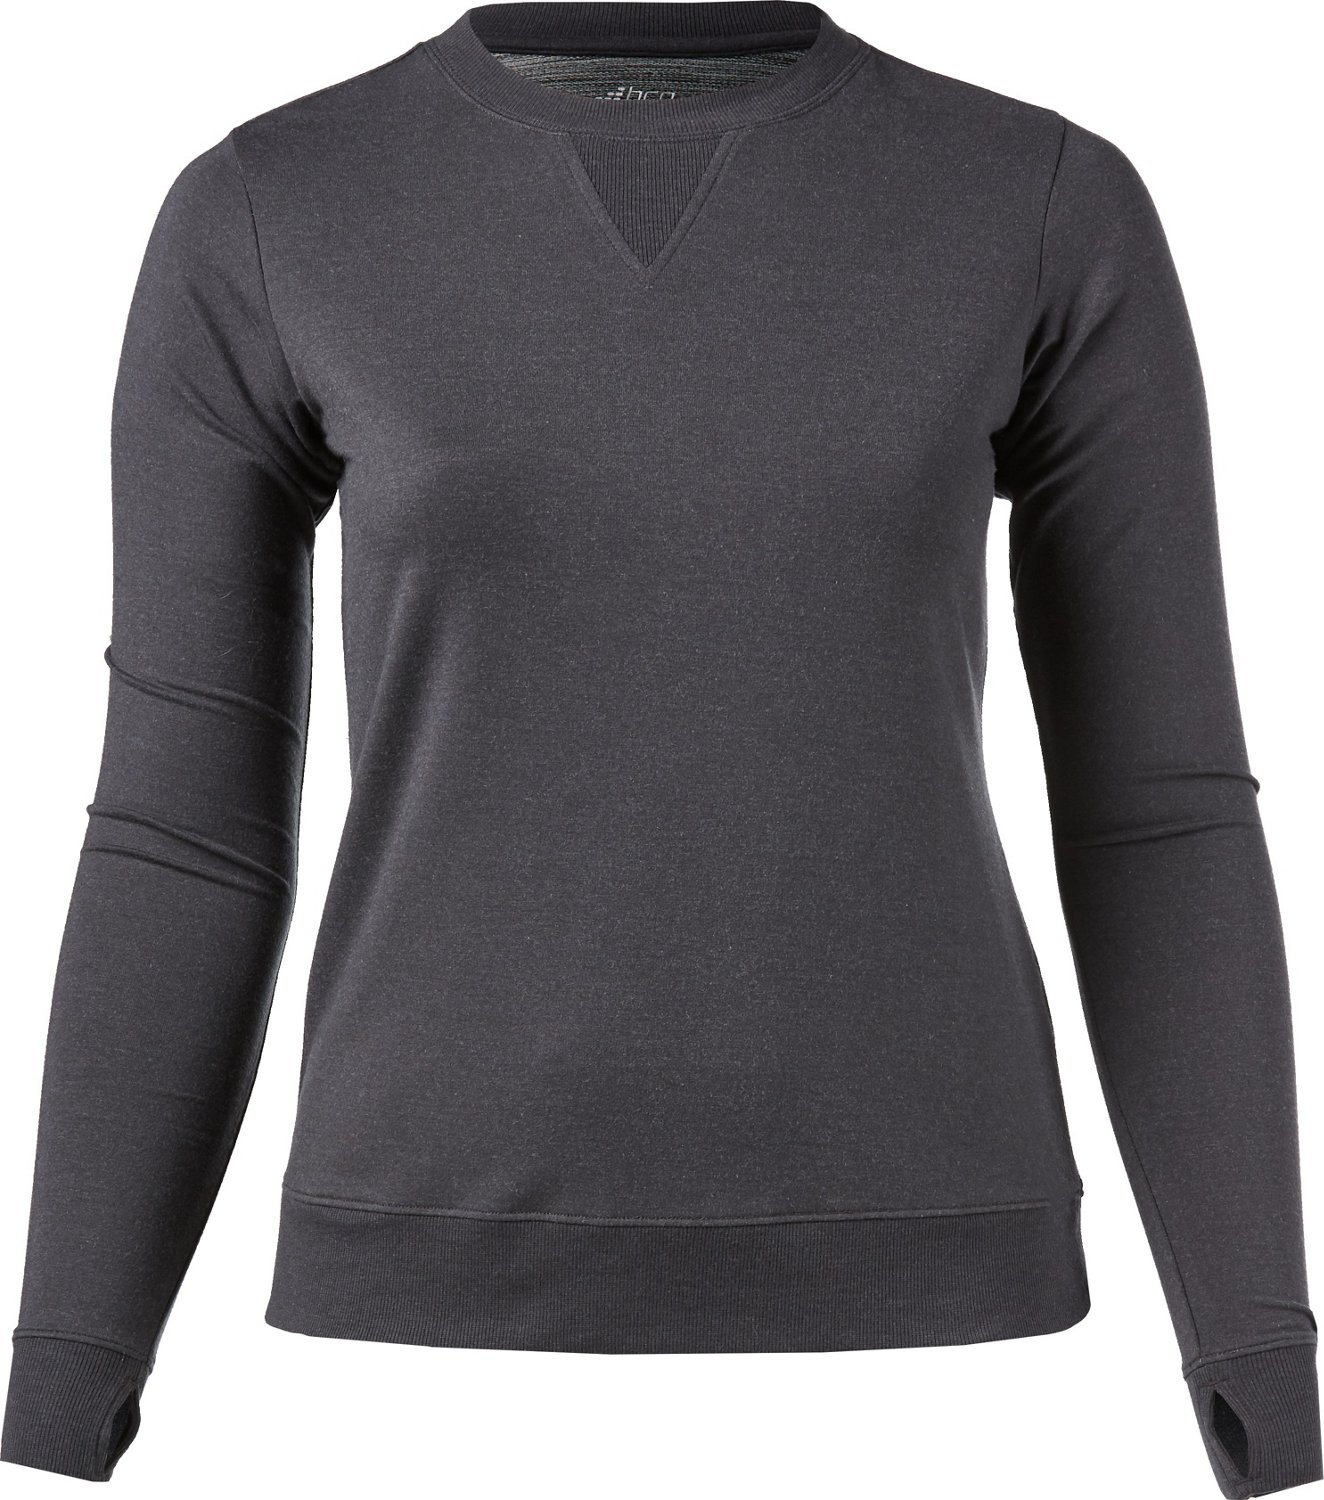 Display product reviews for BCG Women s French Terry Pullover Sweatshirt 050618821